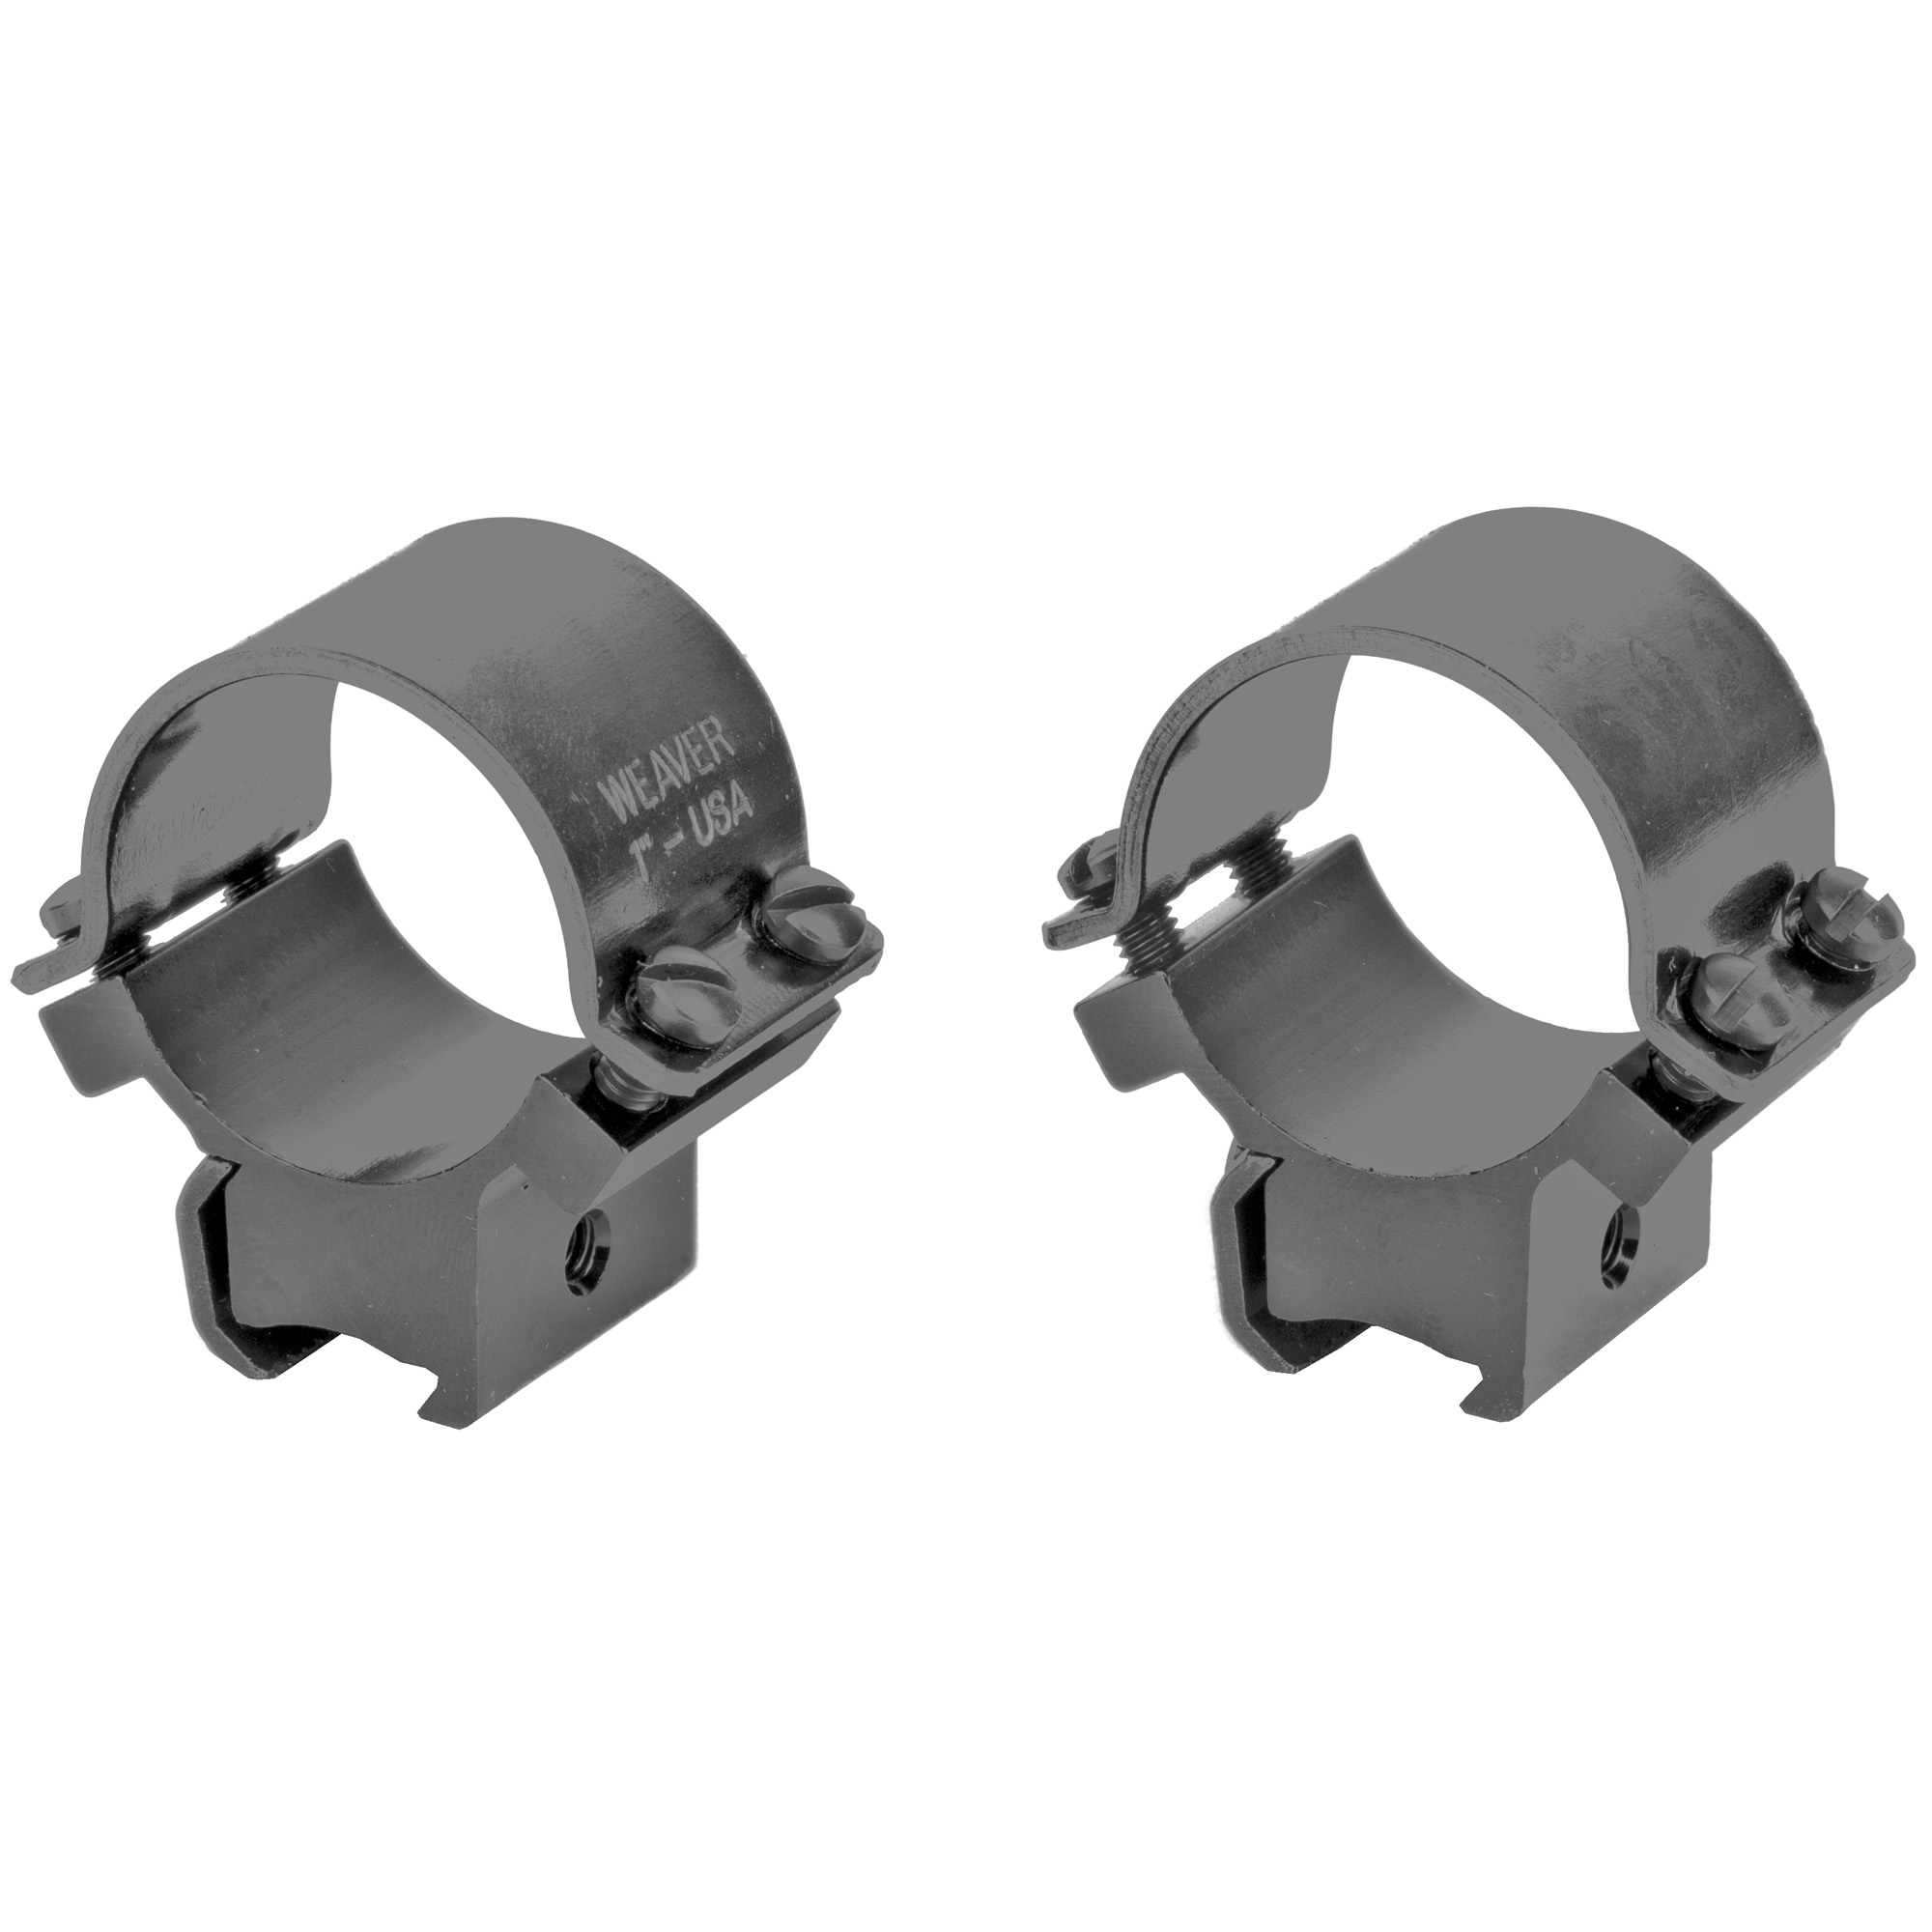 These mounts are made for .22s that have factory grooves in the rifle's receiver. They clamp directly to the receiver or Tip-Off Bases